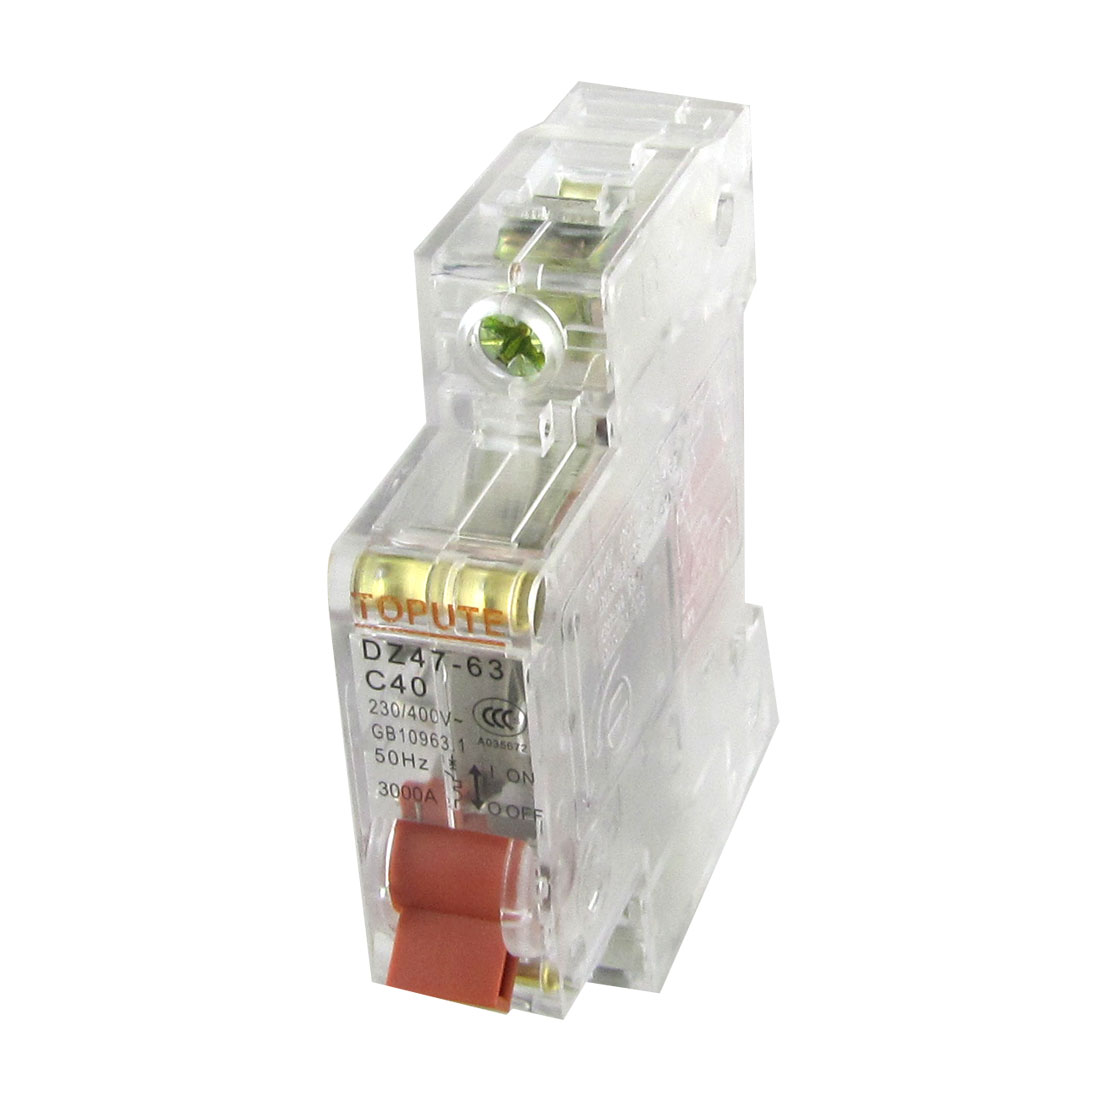 AC 230V 400V 40A Single Pole 1P Transparent Mini Circuit Breaker MCB